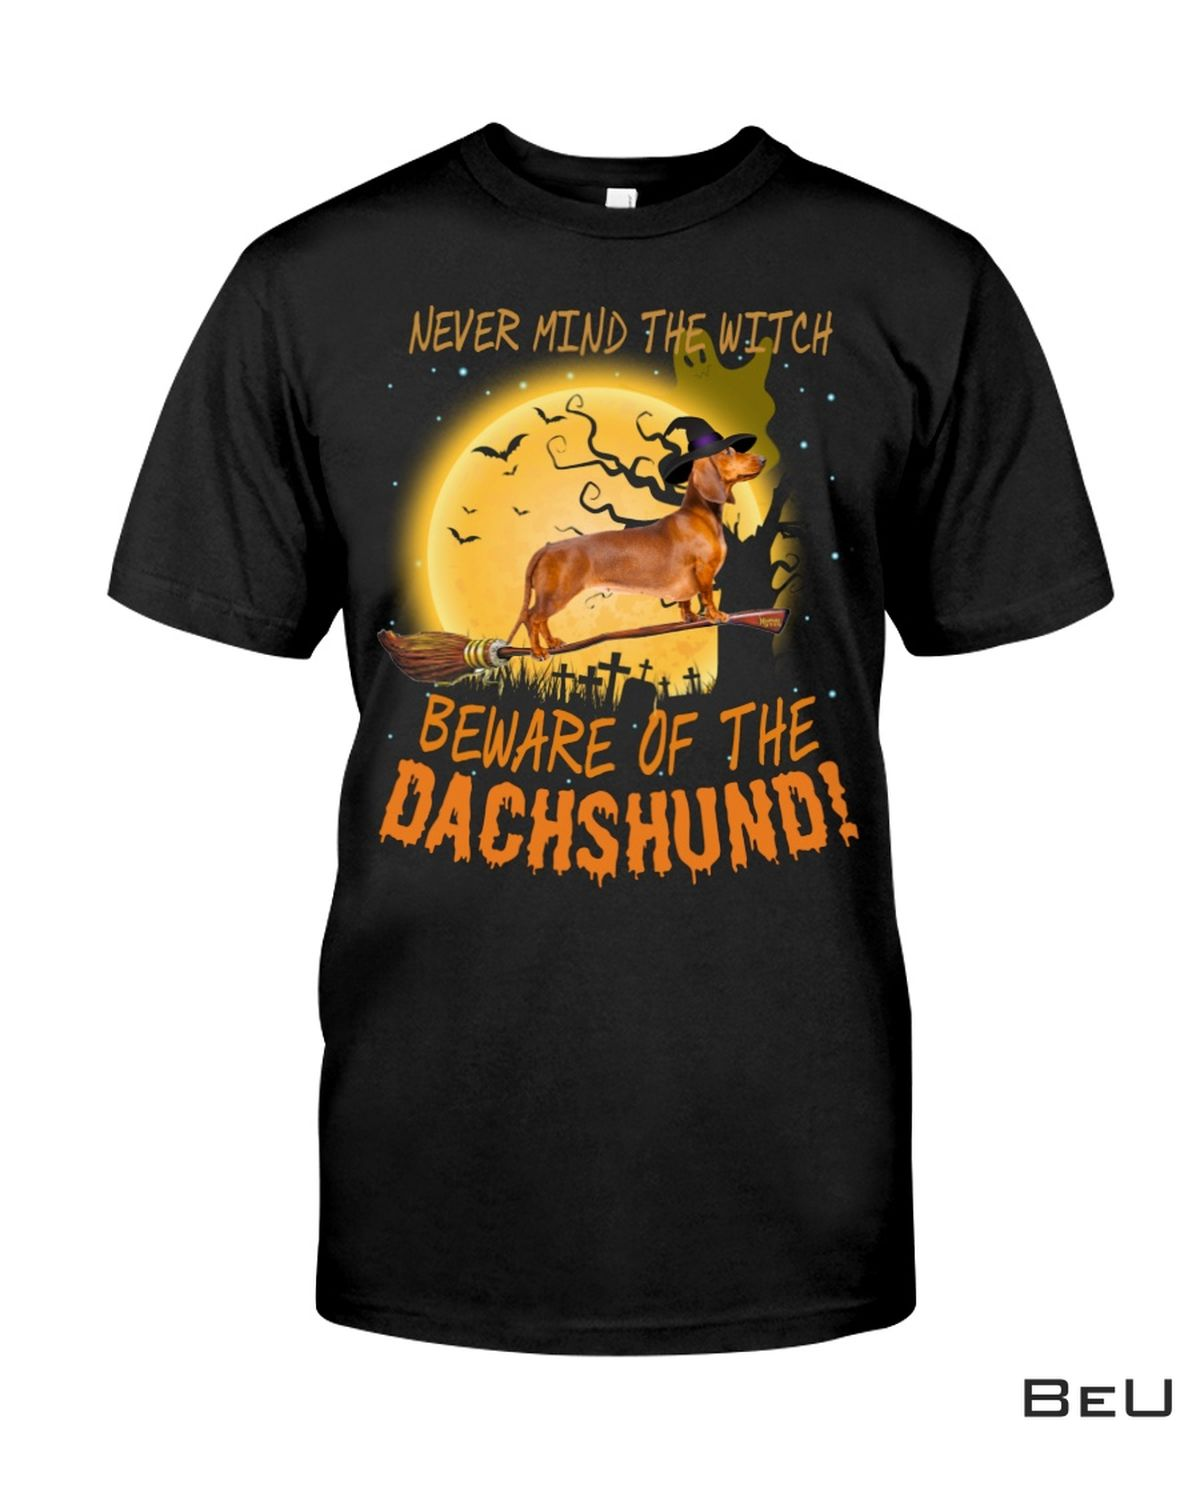 Dachshund Never Mind The Witch Shirt, hoodie, tank top